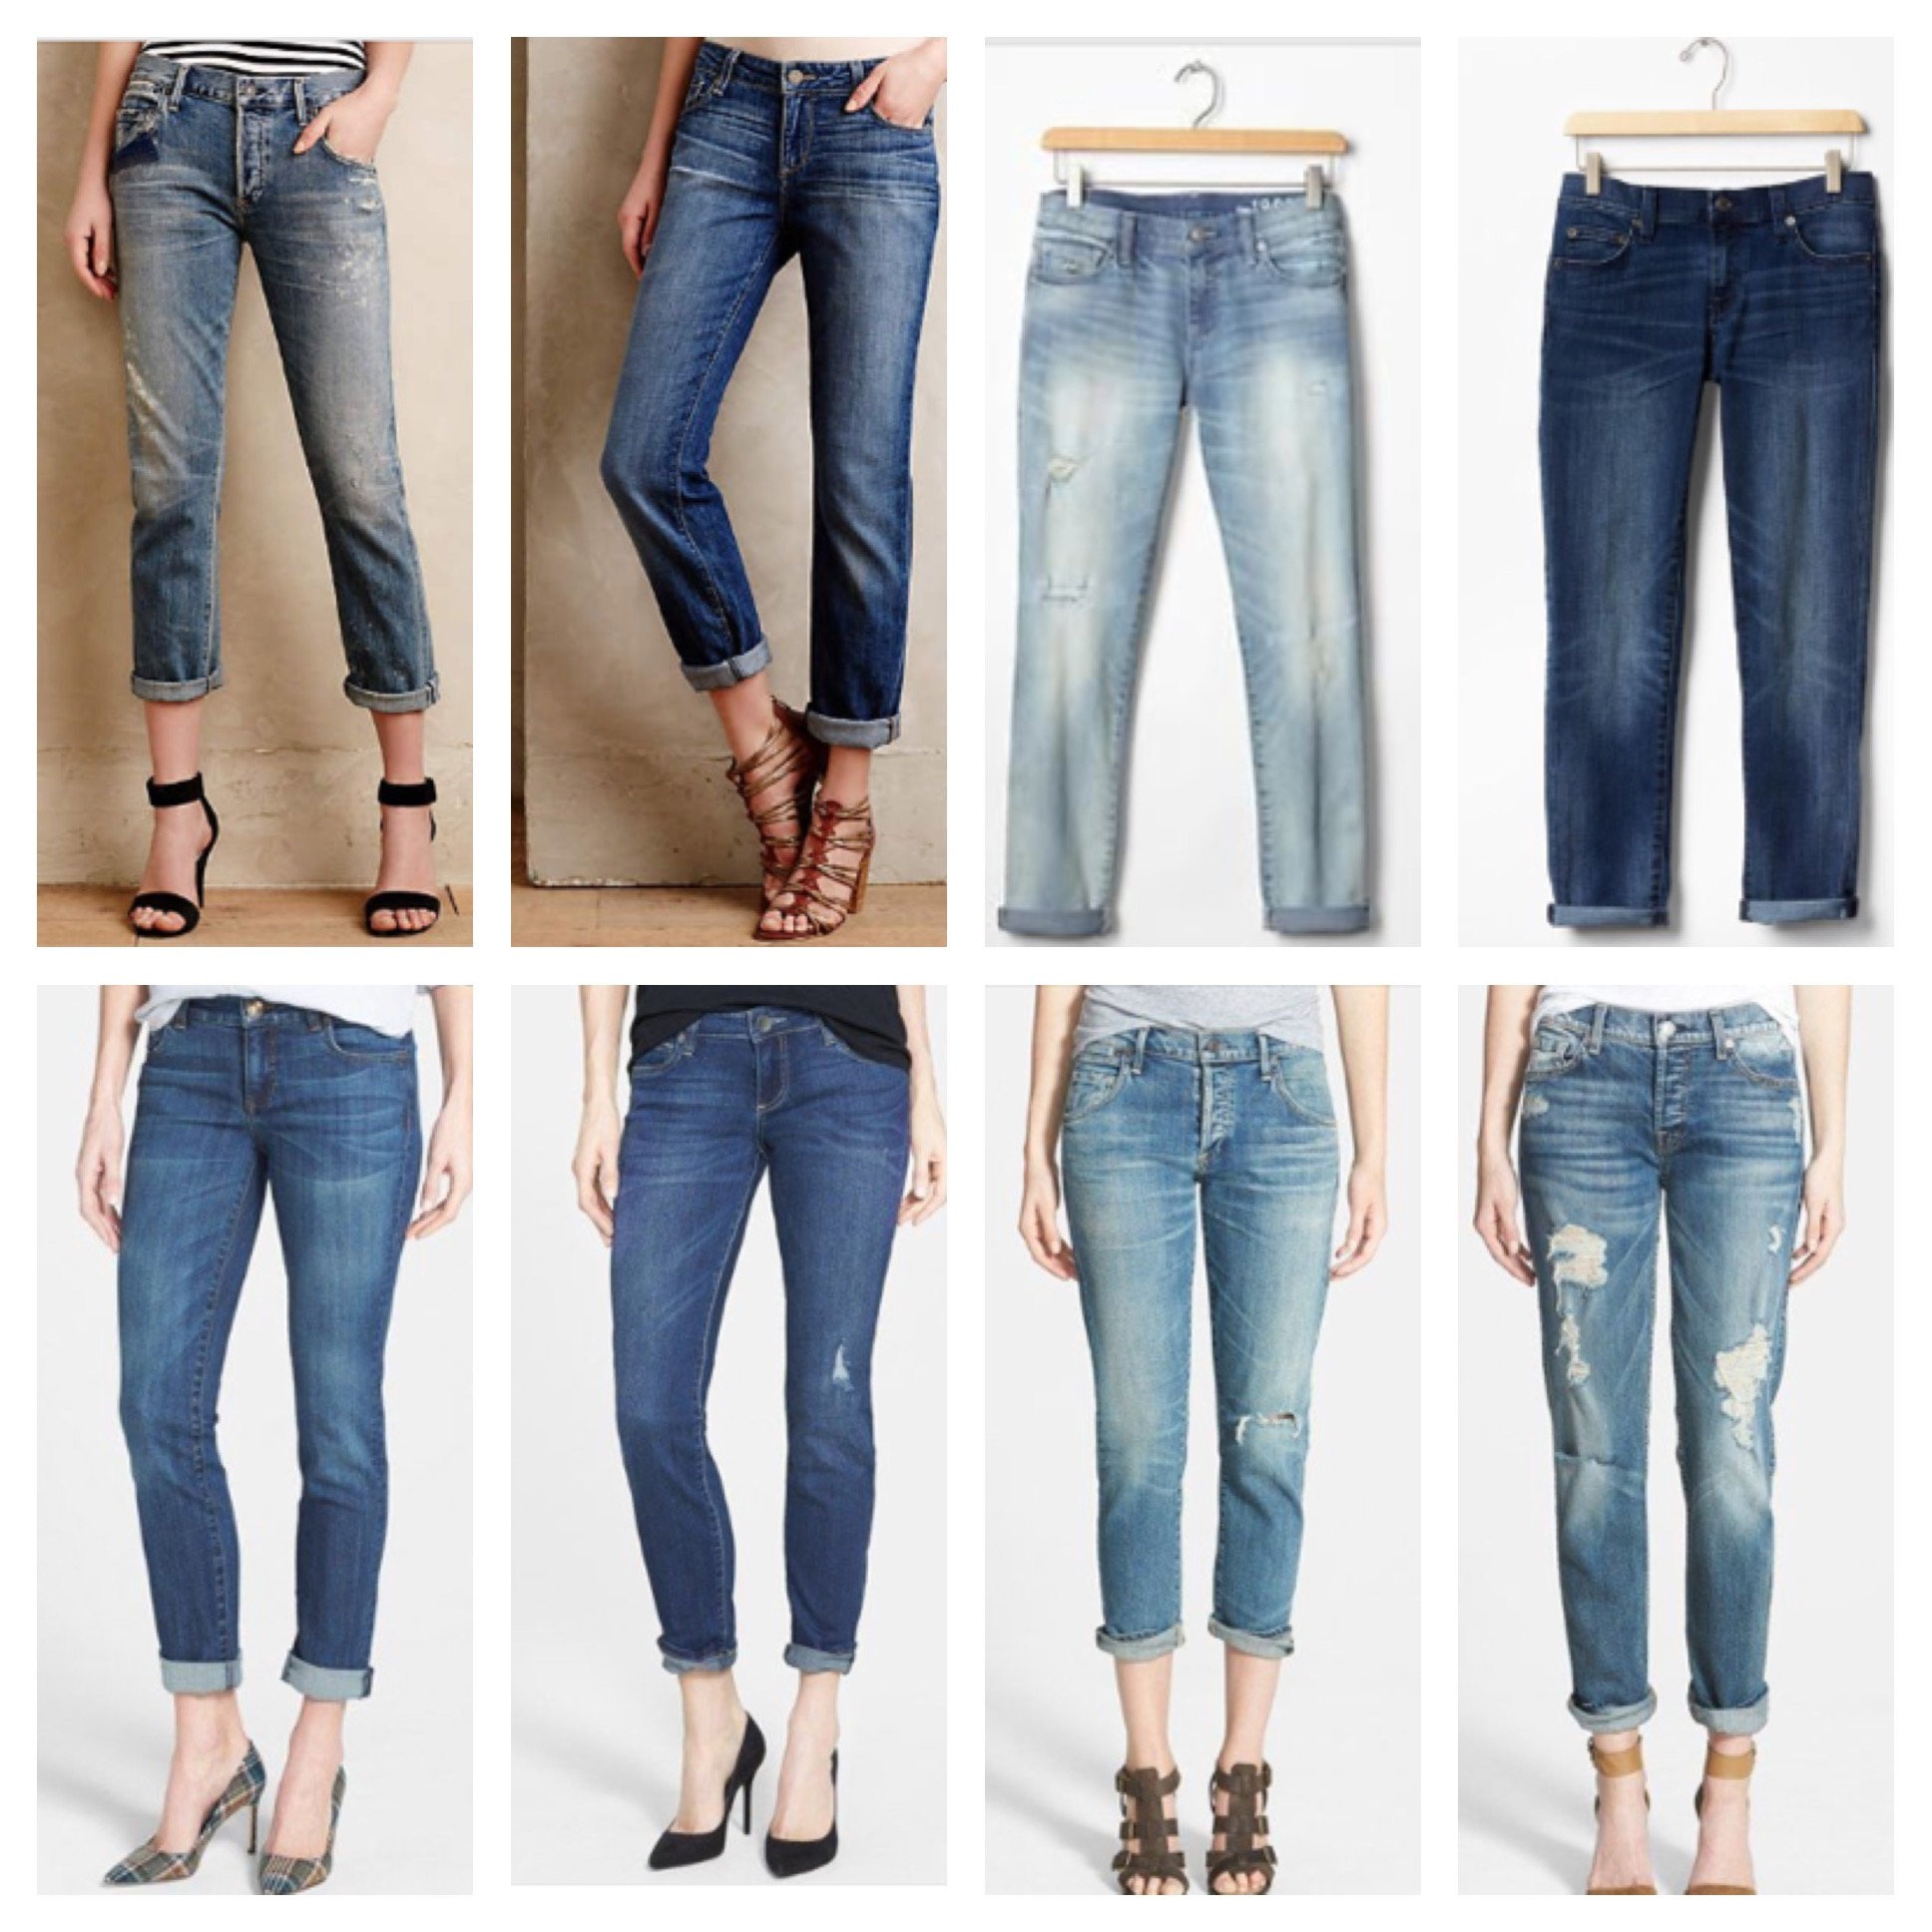 Best Shoes For Boyfriend Jeans